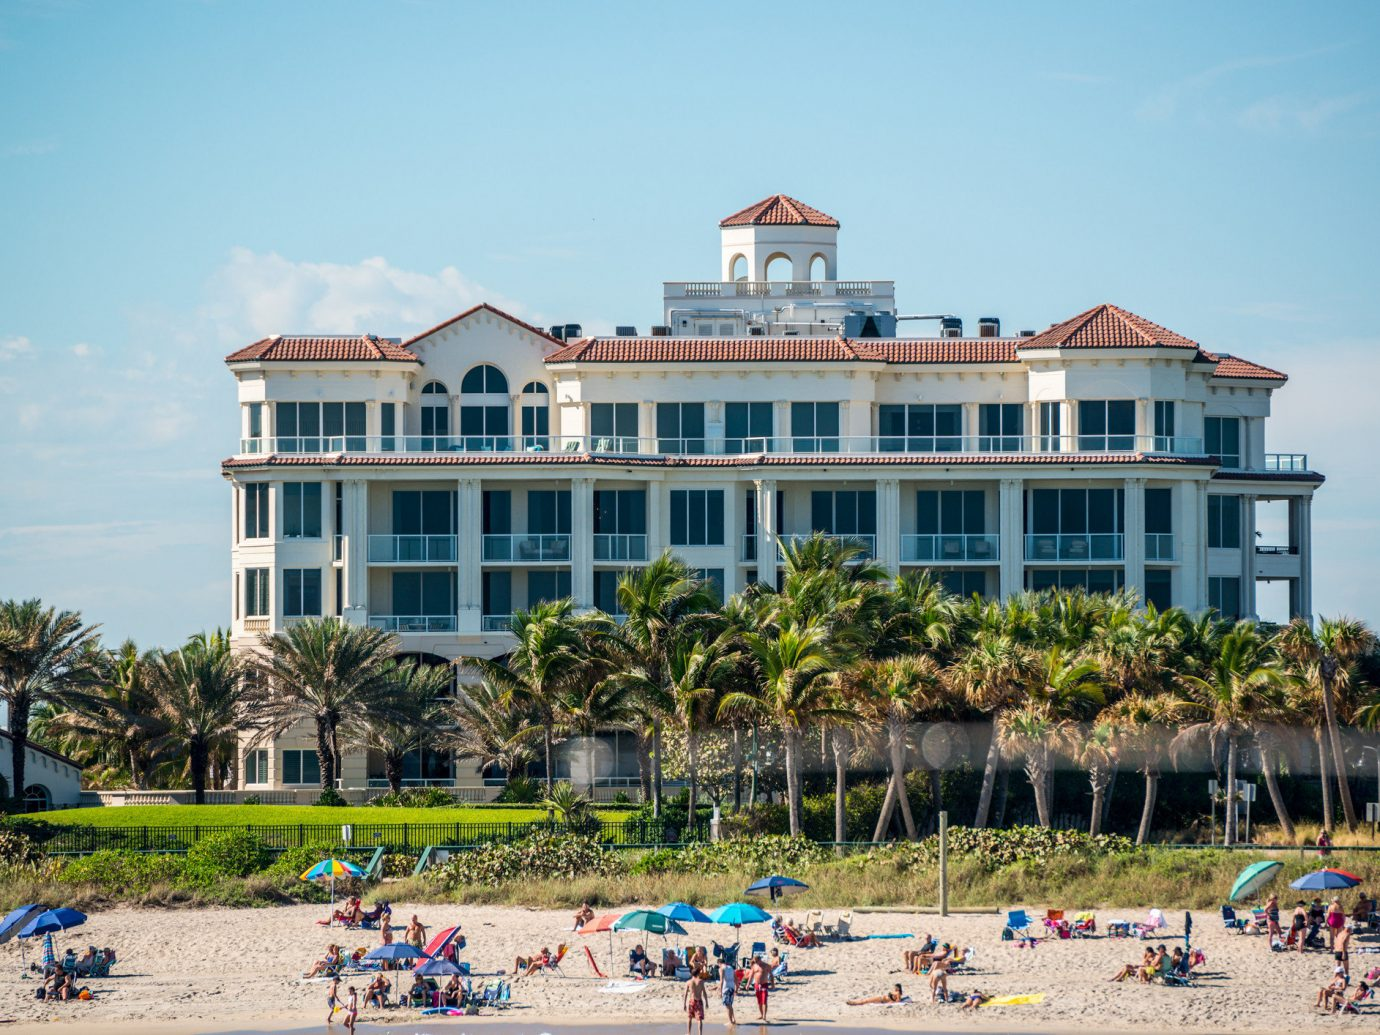 Trip Ideas outdoor Beach body of water sky Sea shore daytime Coast people tourism vacation Ocean Resort real estate house estate sand water leisure home City building cloud condominium hotel sandy day